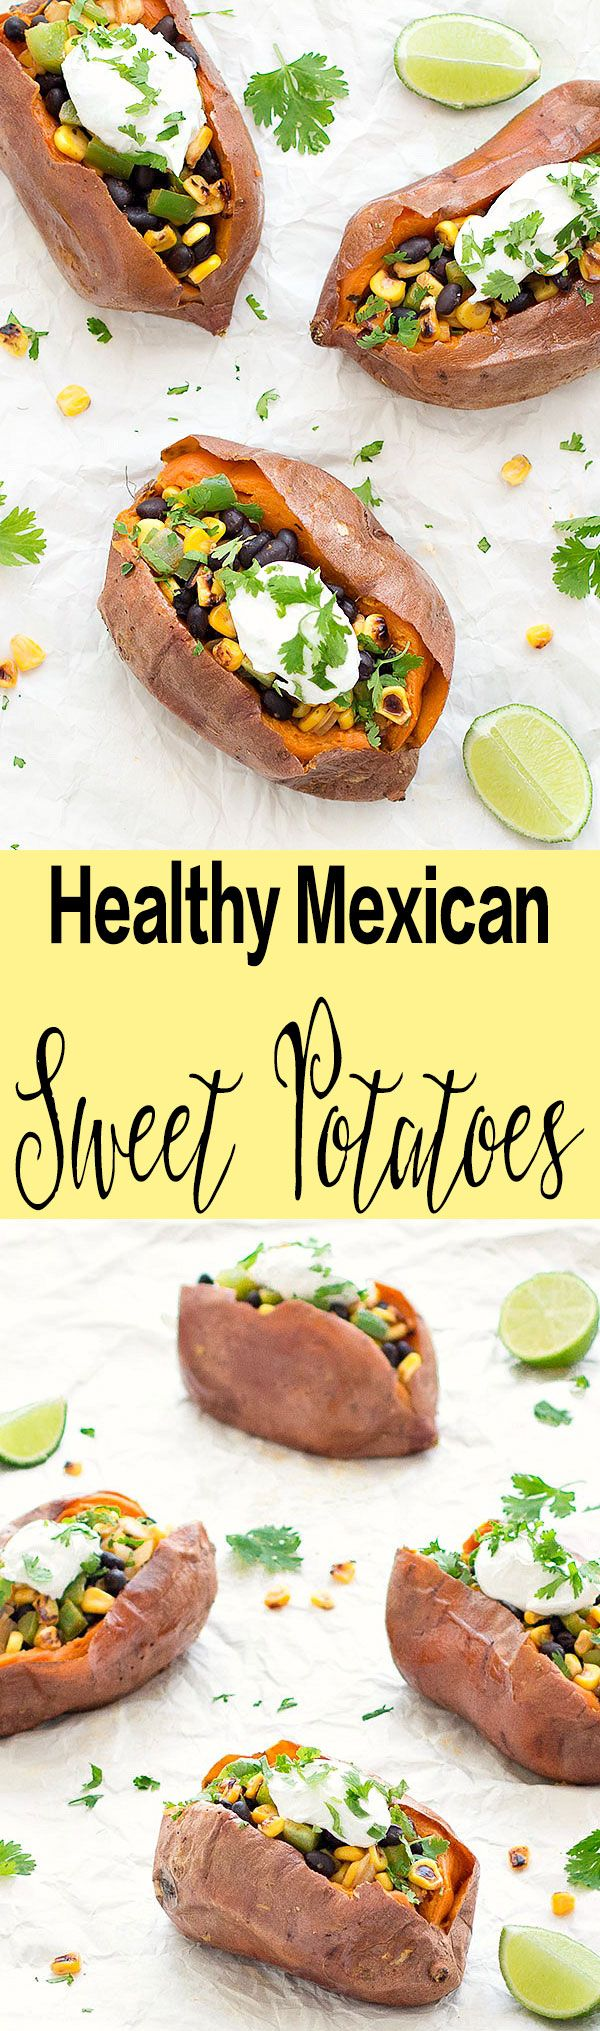 Healthy Mexican Baked Sweet Potatoes: baked sweet potatoes are filled ...